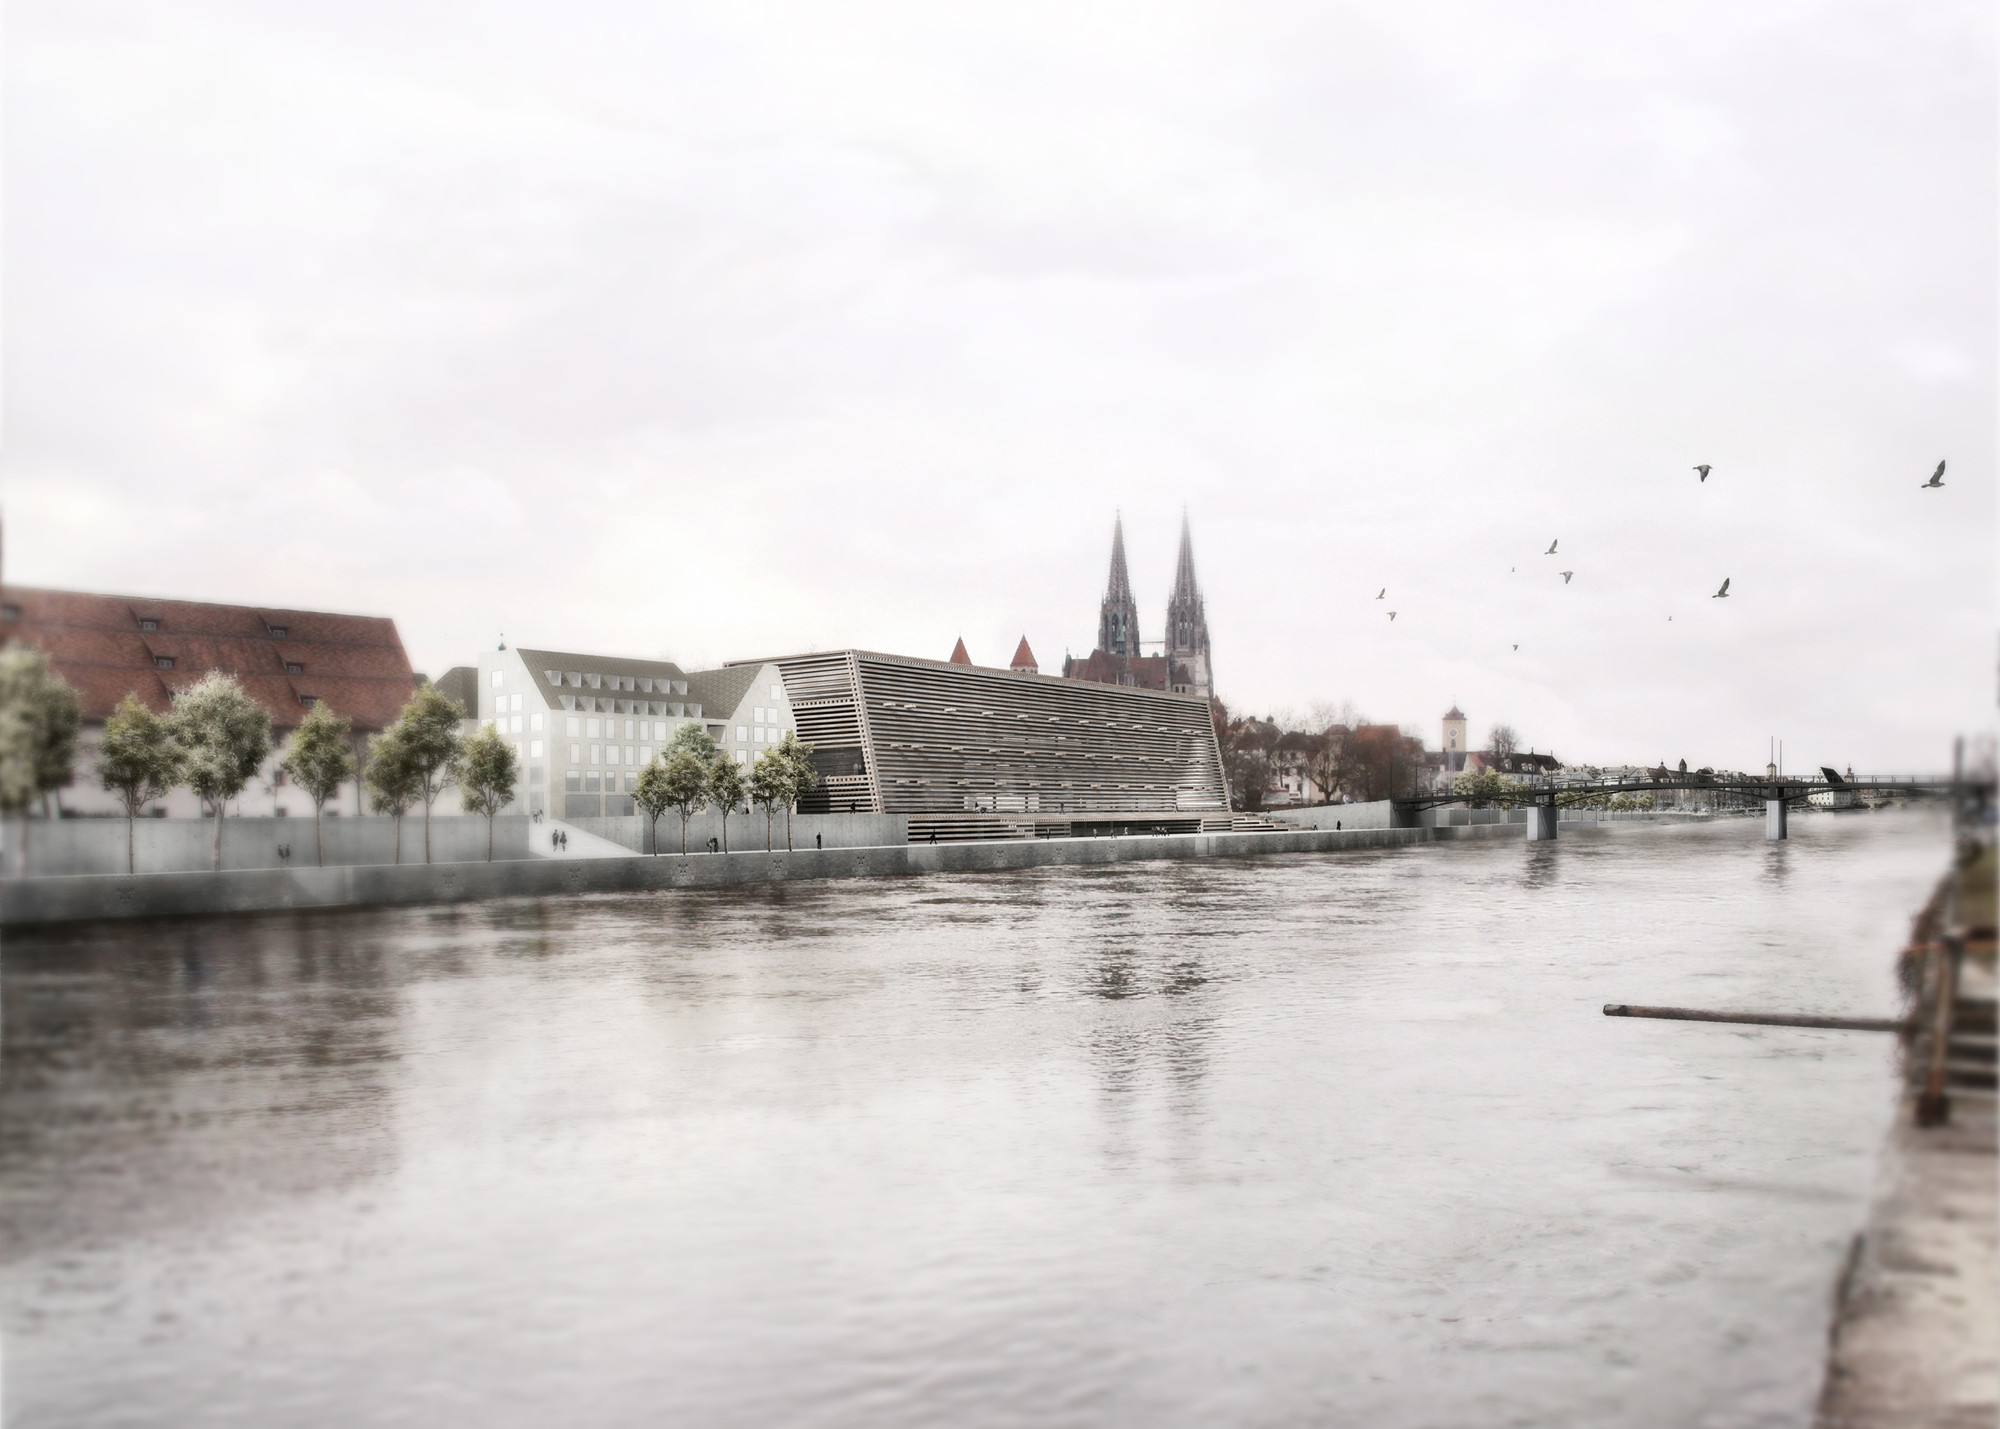 Museum of Bavarian History Competition Entry / Mauro Turin Architectes, Courtesy of Mauro Turin Architectes